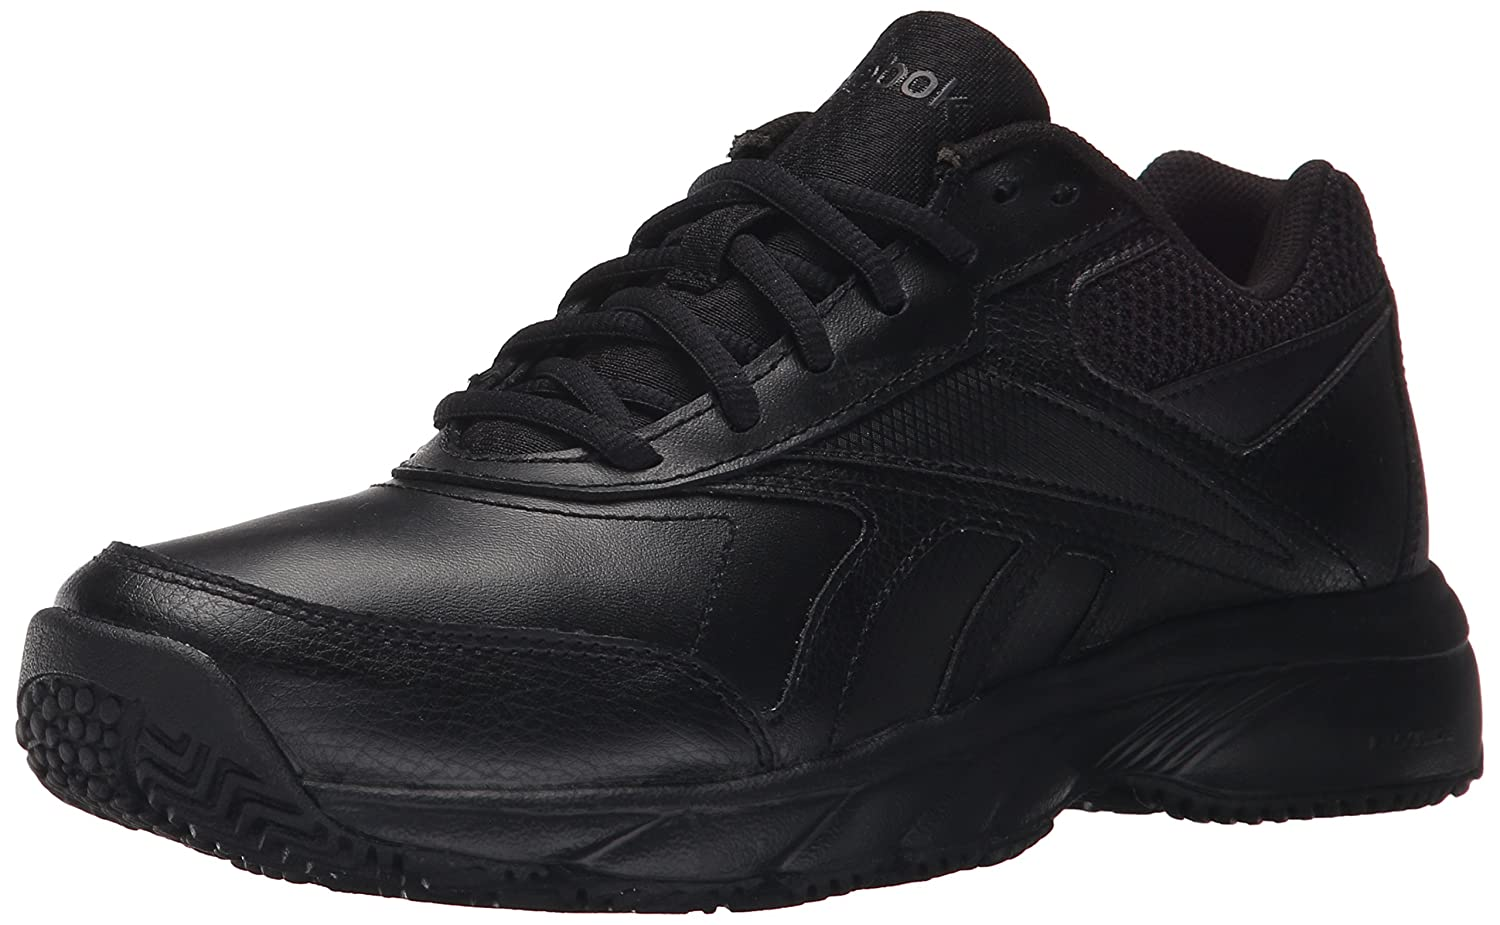 Reebok Women's Work 'N Cushion 2.0 Walking Shoe B010V6NTP0 10.5 B(M) US|Black/Black